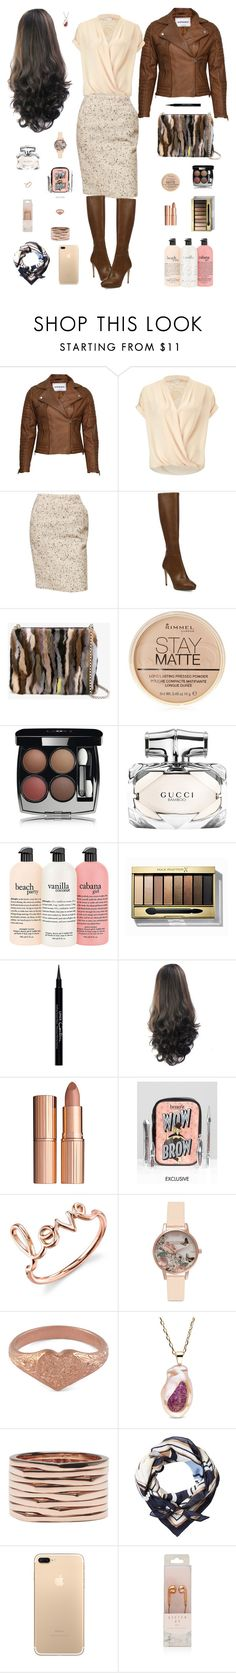 """""""Beauty Consultant"""" by lmello ❤ liked on Polyvore featuring VIPARO, Miss Selfridge, Jimmy Choo, Christian Louboutin, Rimmel, Chanel, Gucci, Max Factor, Givenchy and Charlotte Tilbury"""